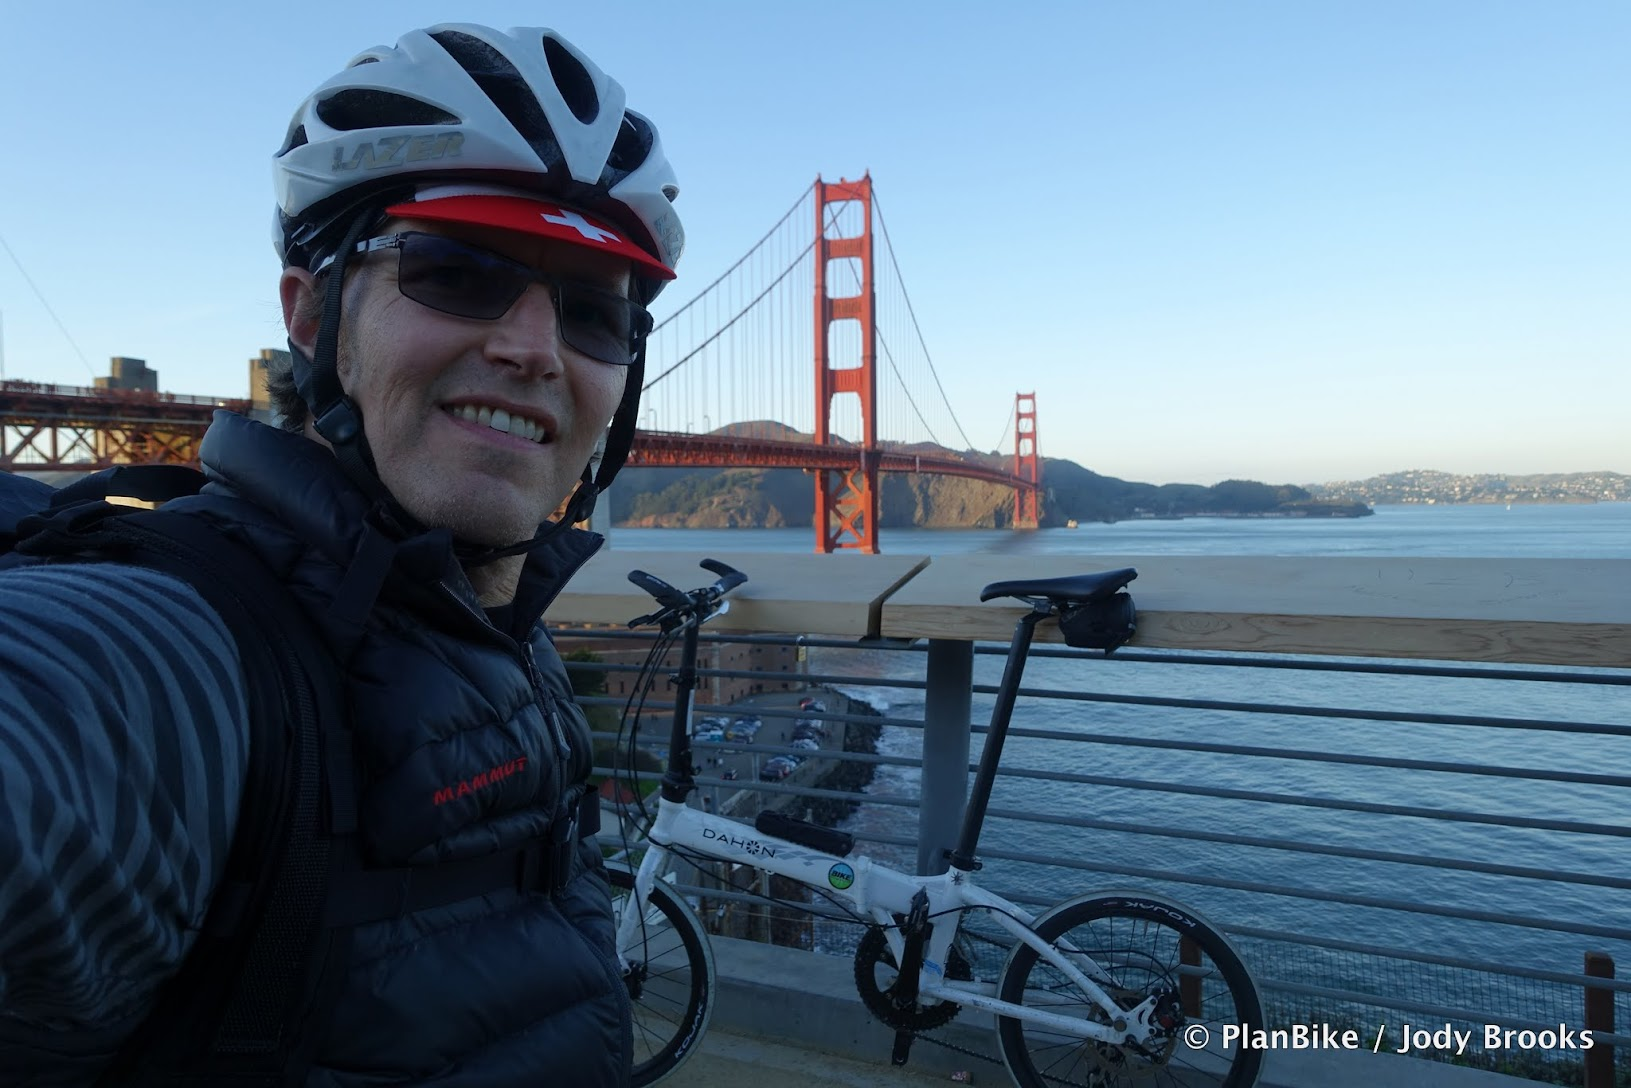 40+ miles on a good Folding Bike is great.